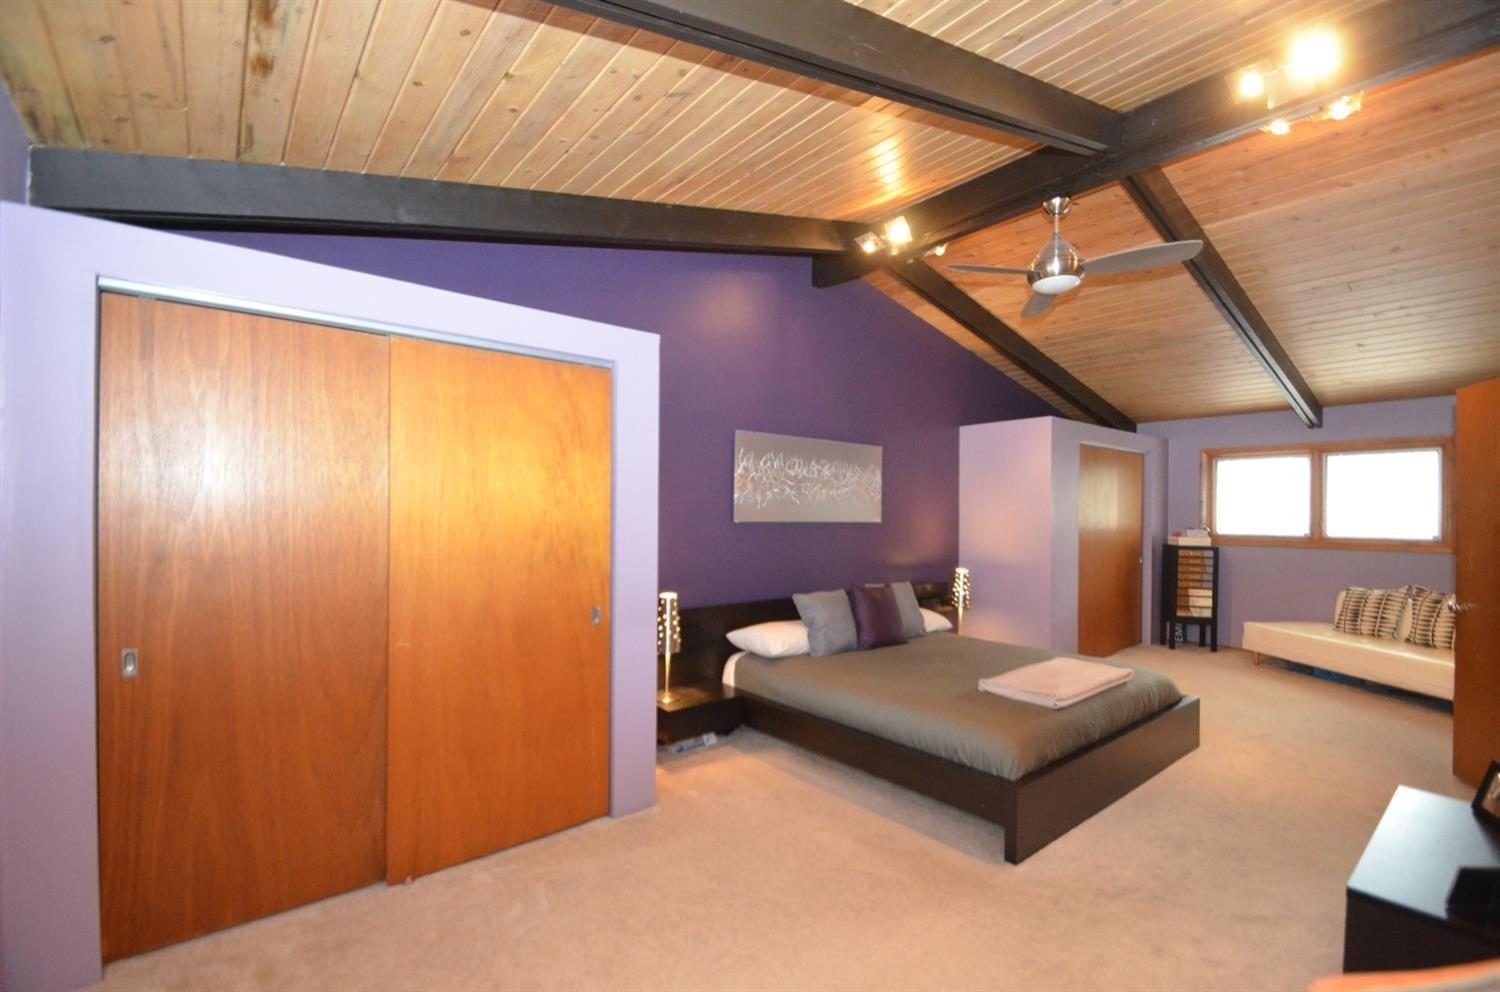 Another view of the 27 ft long master bedroom!  This was originally two smaller bedrooms. Instead of the 4 bedrooms it has now, the house originally had 5!